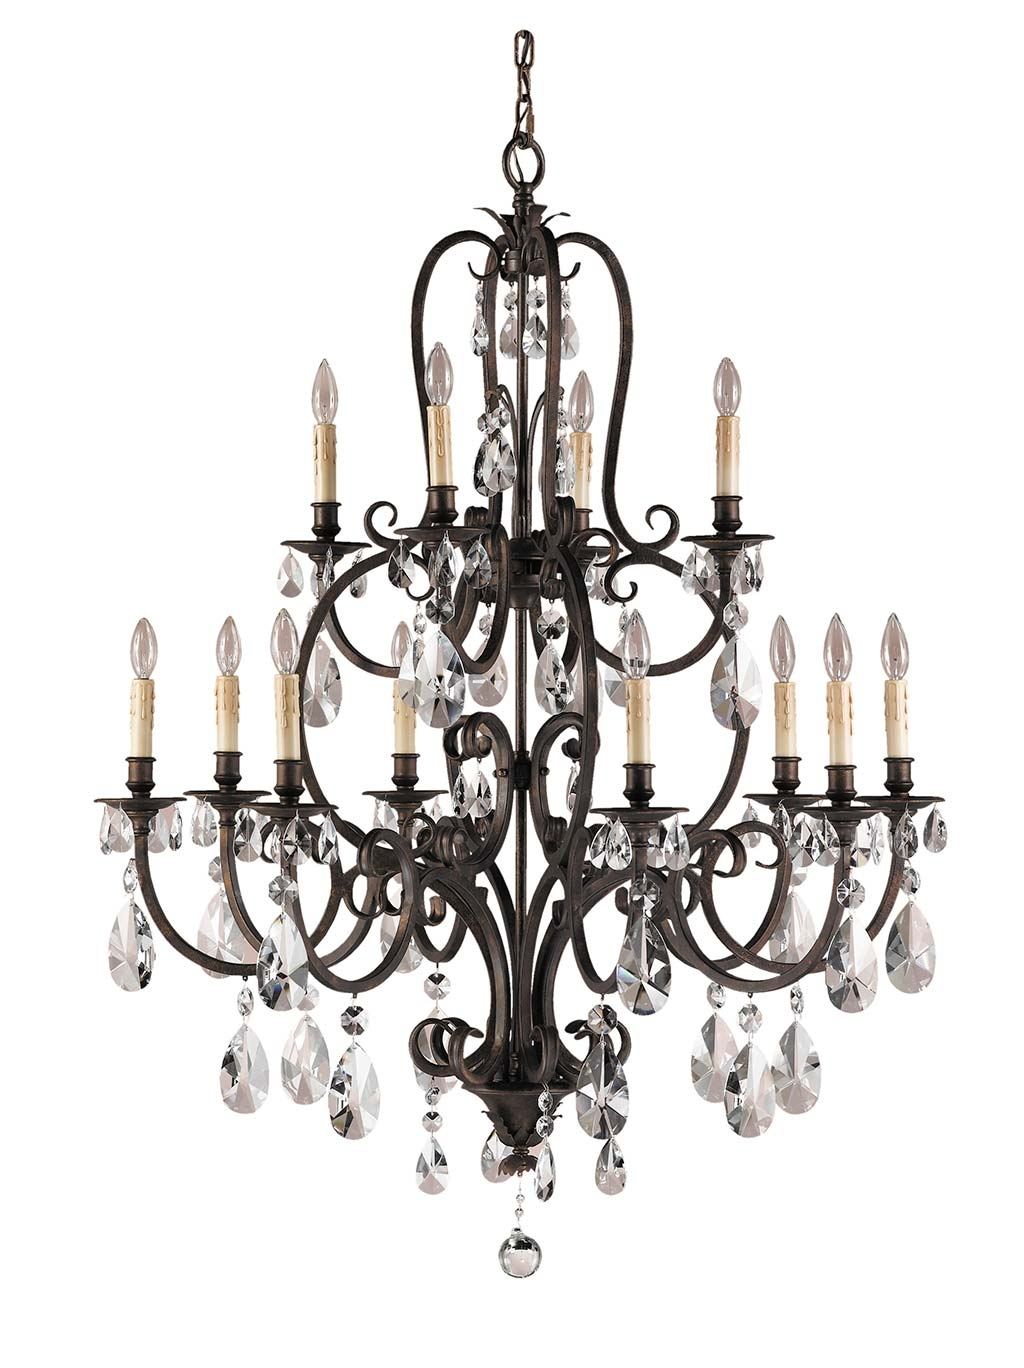 Murray Feiss Lighting F2229 Salon Maison Collection Chandelier Intended For Feiss Chandeliers (Image 25 of 25)